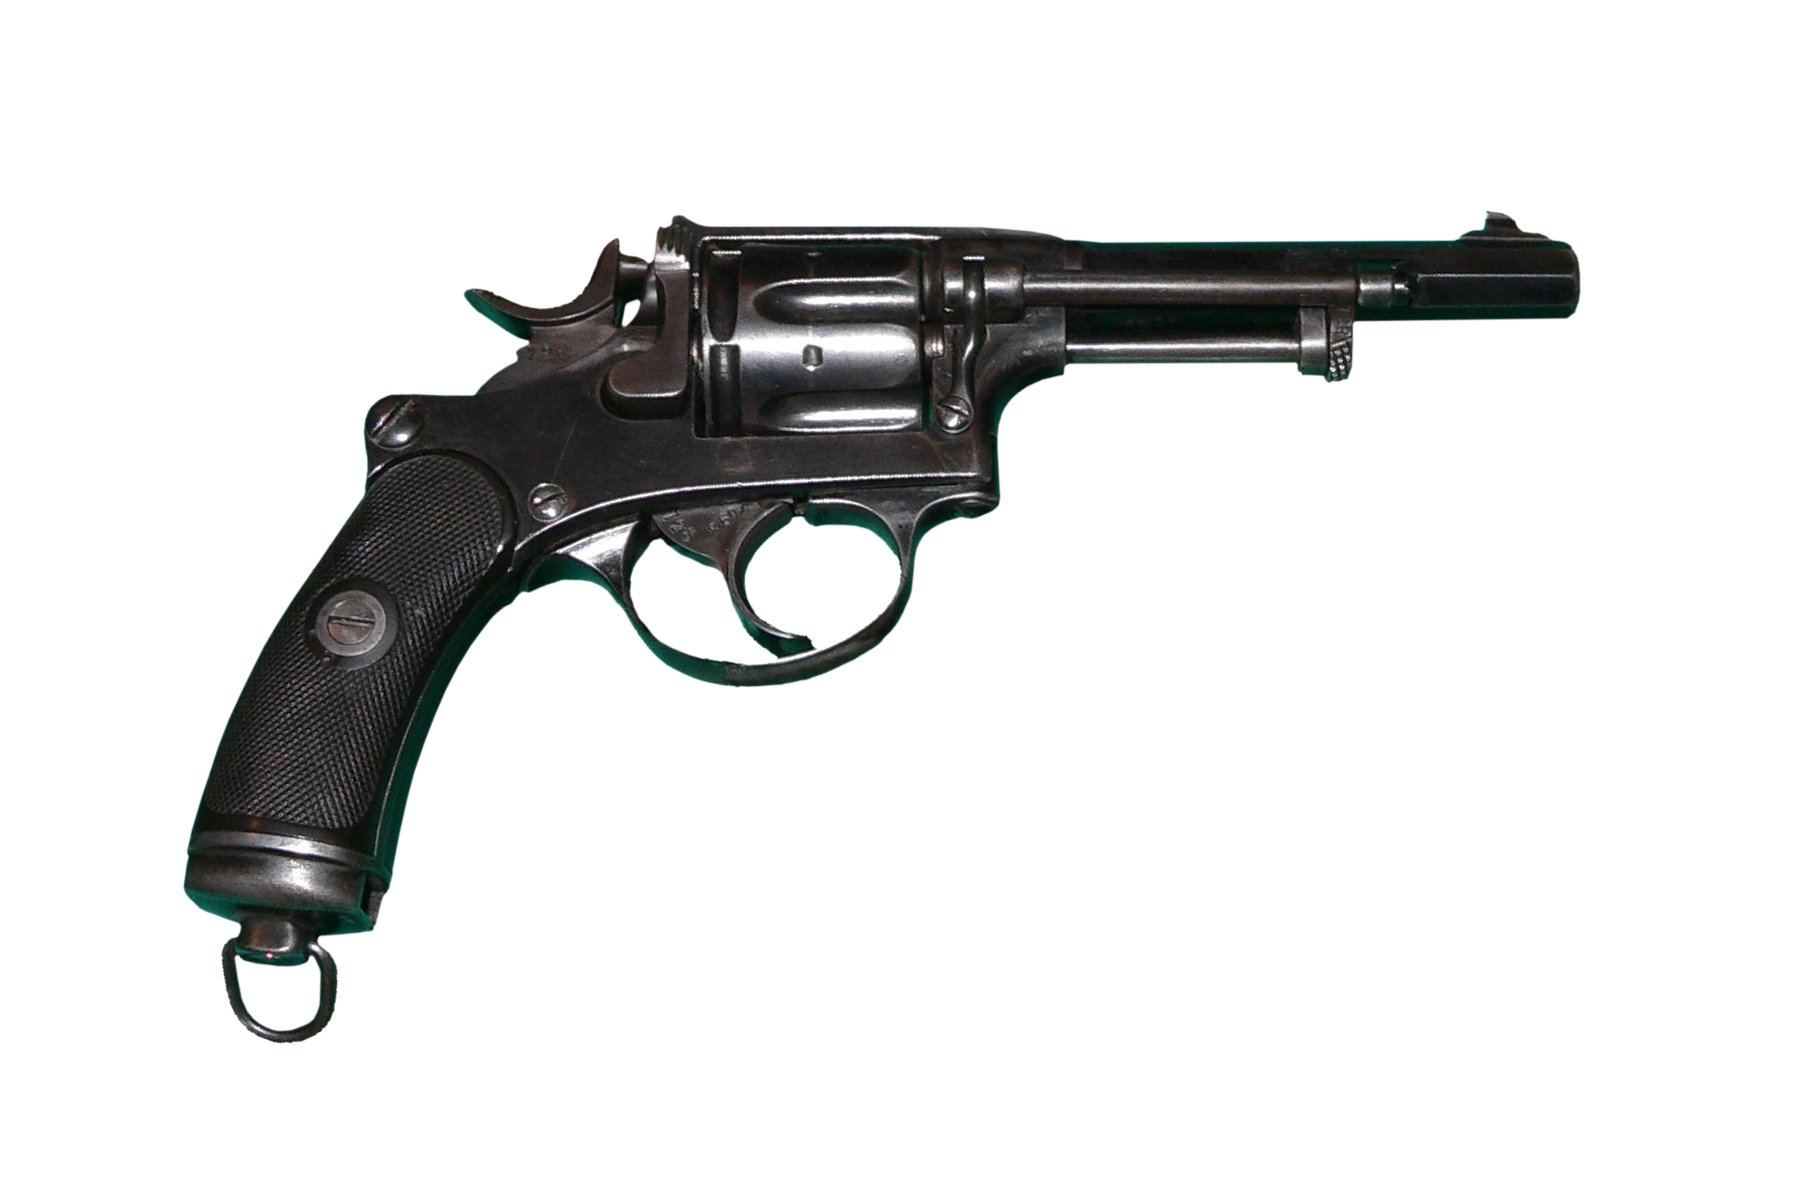 File:Revolver-p1030107.jpg - Wikipedia, the free encyclopedia